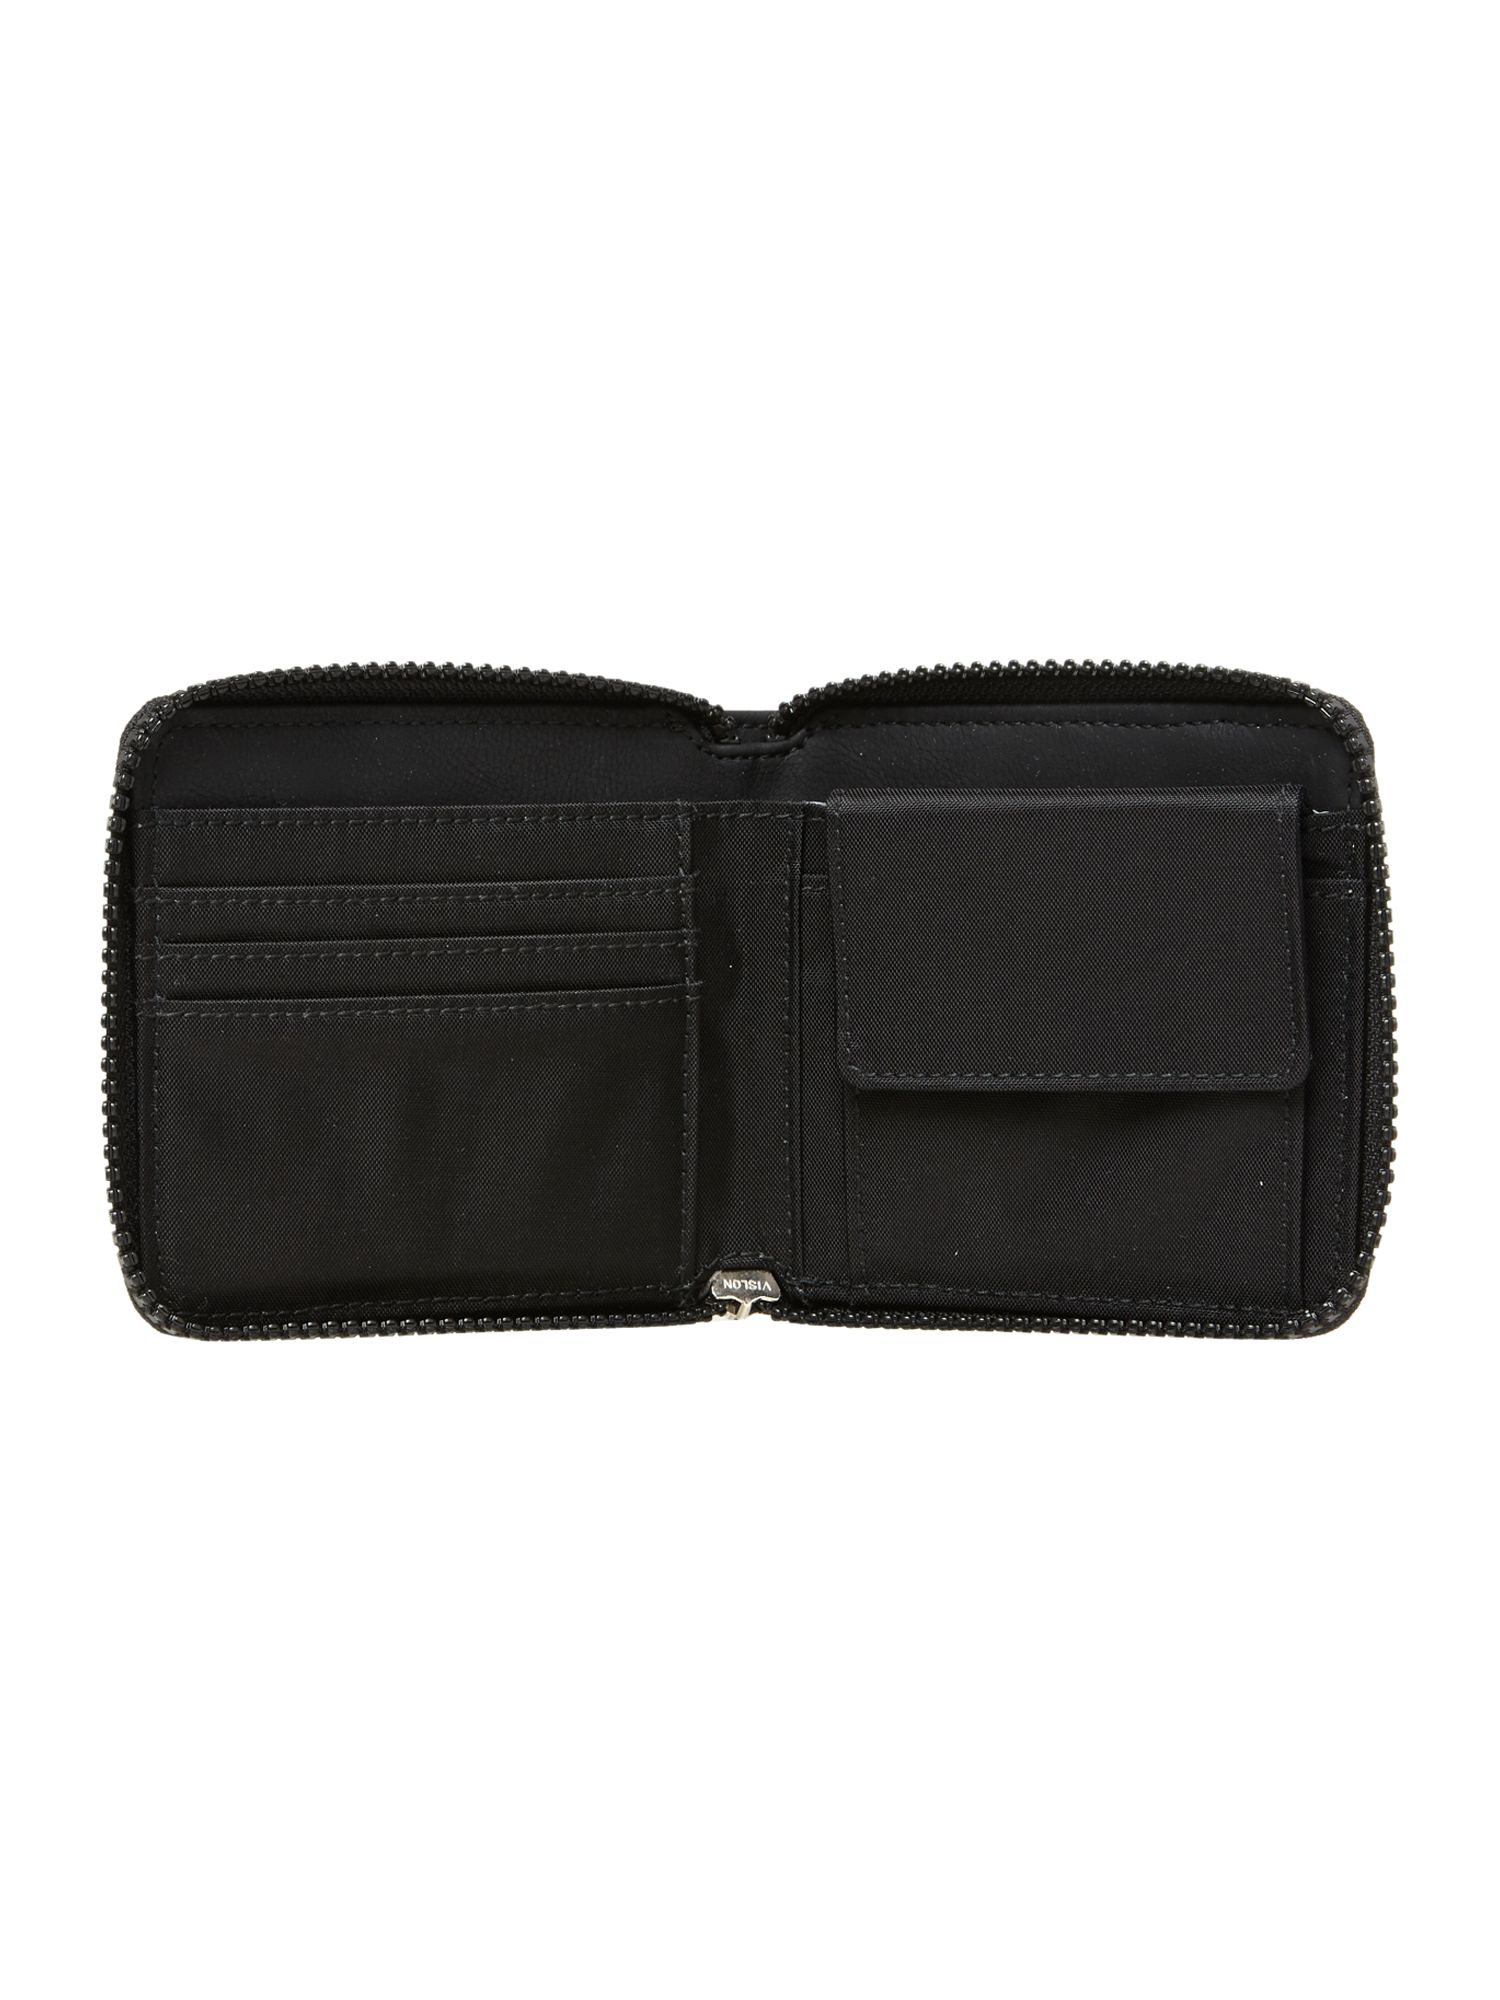 Artis zip around wallet